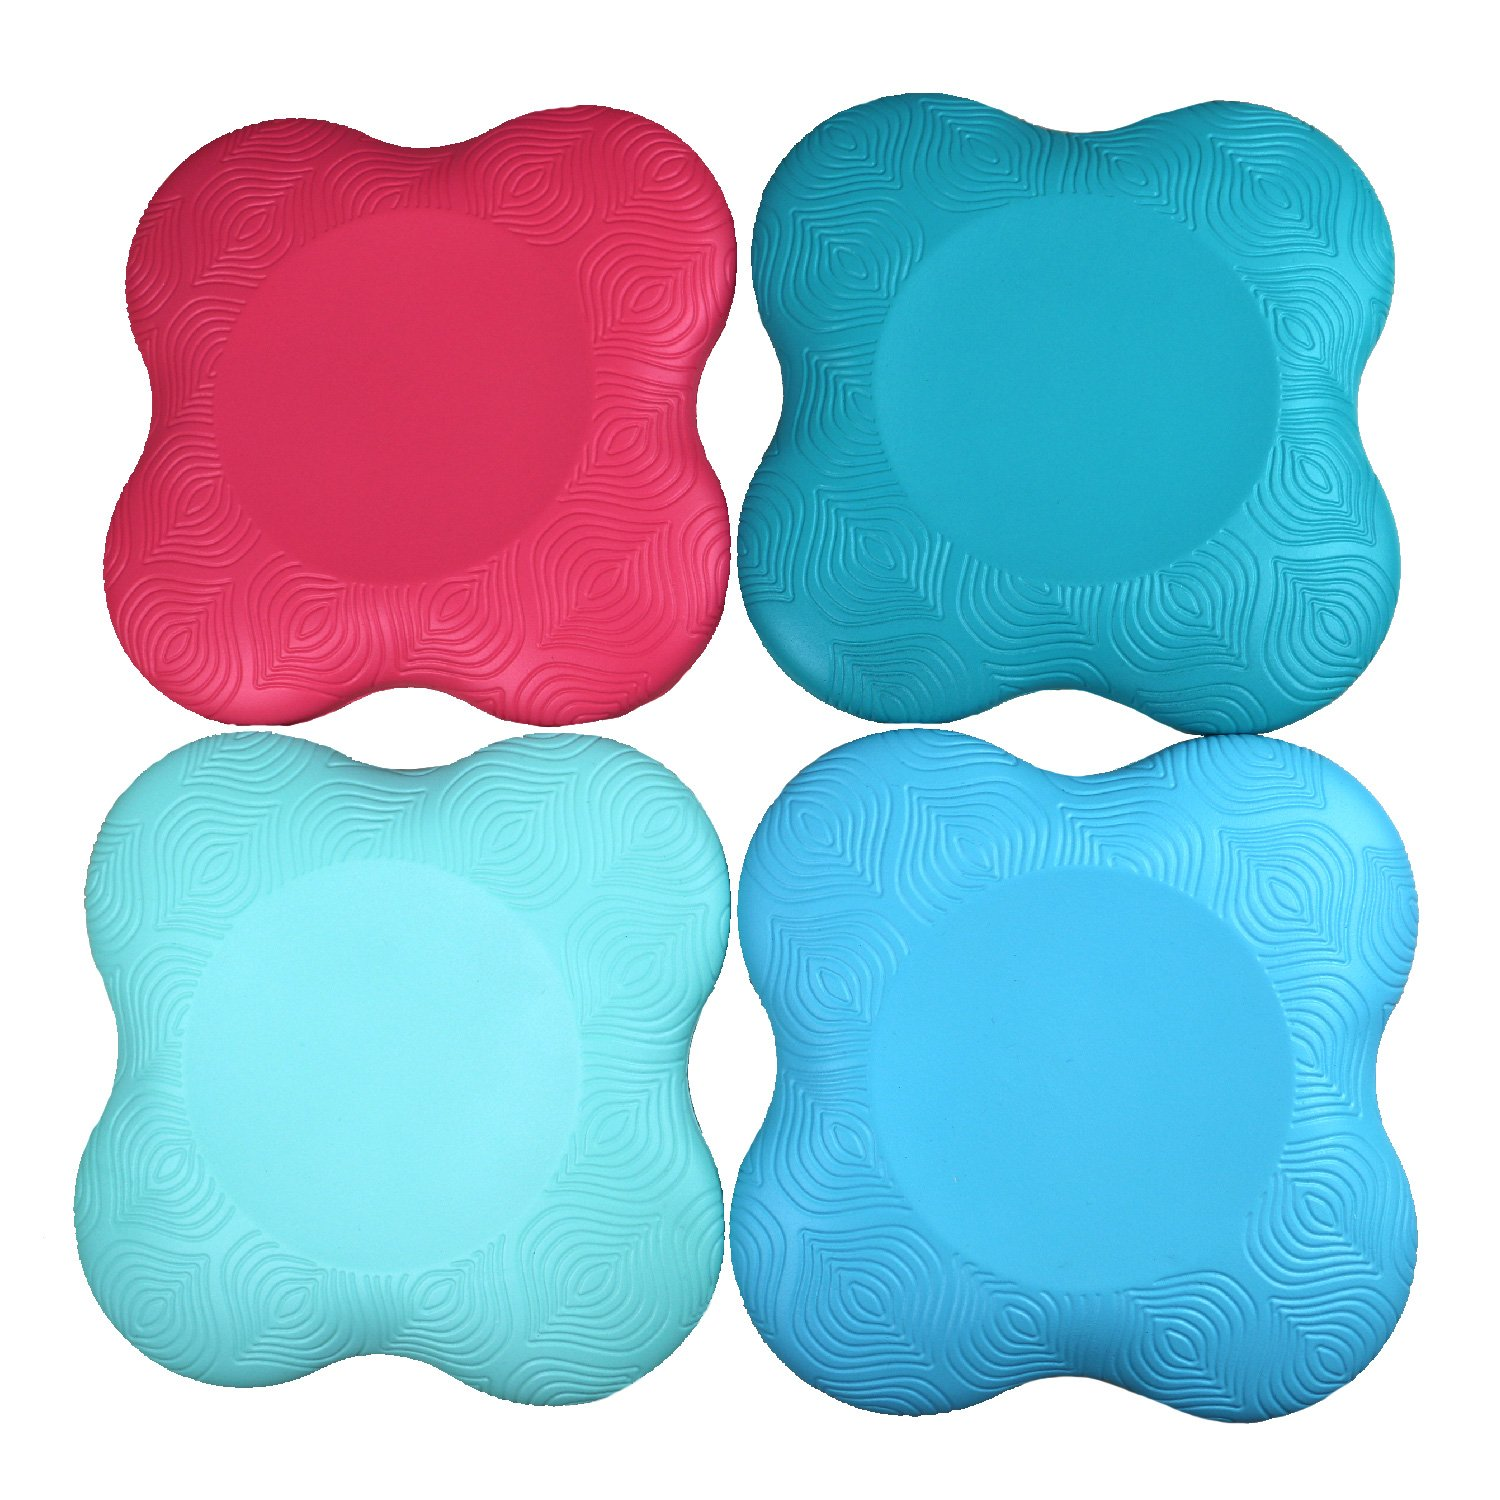 Hand and Head-2 Packs Aiweitey Yoga Knee Pad Thick Kneeling Pad Soft Cushion Support for Knees Elbow